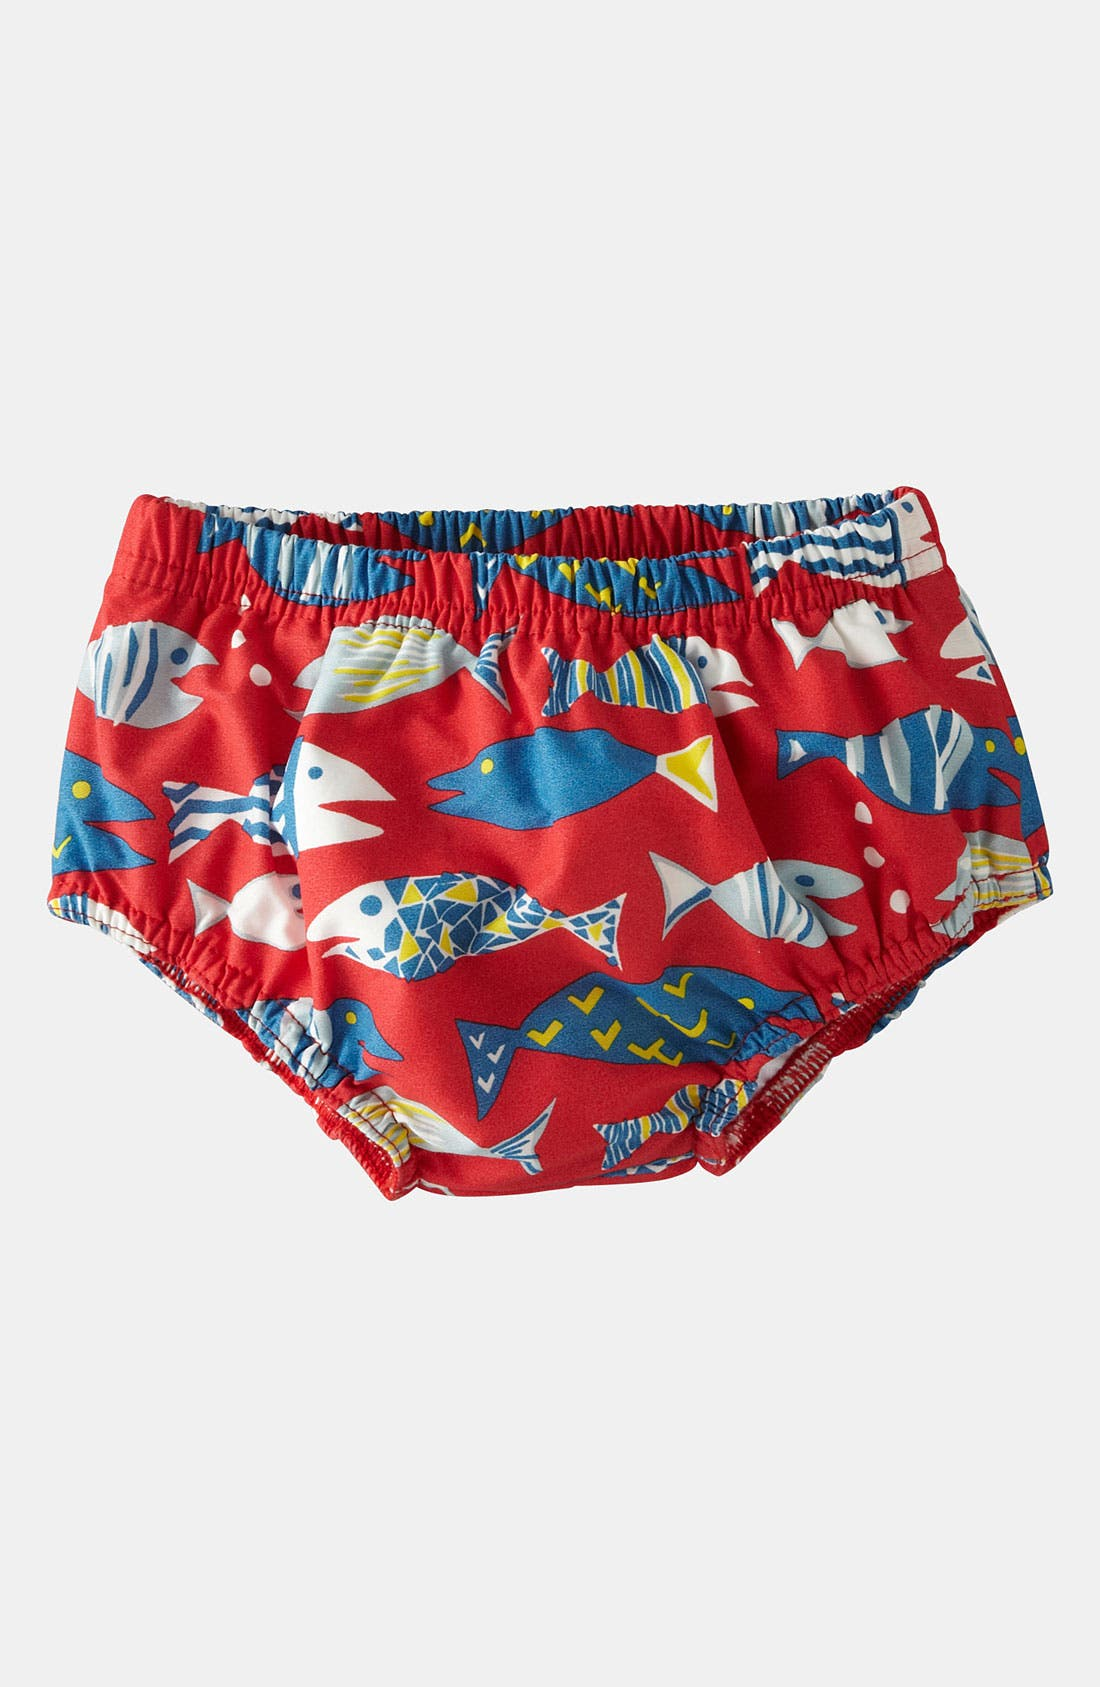 Alternate Image 1 Selected - Mini Boden Swim Pants (Baby)